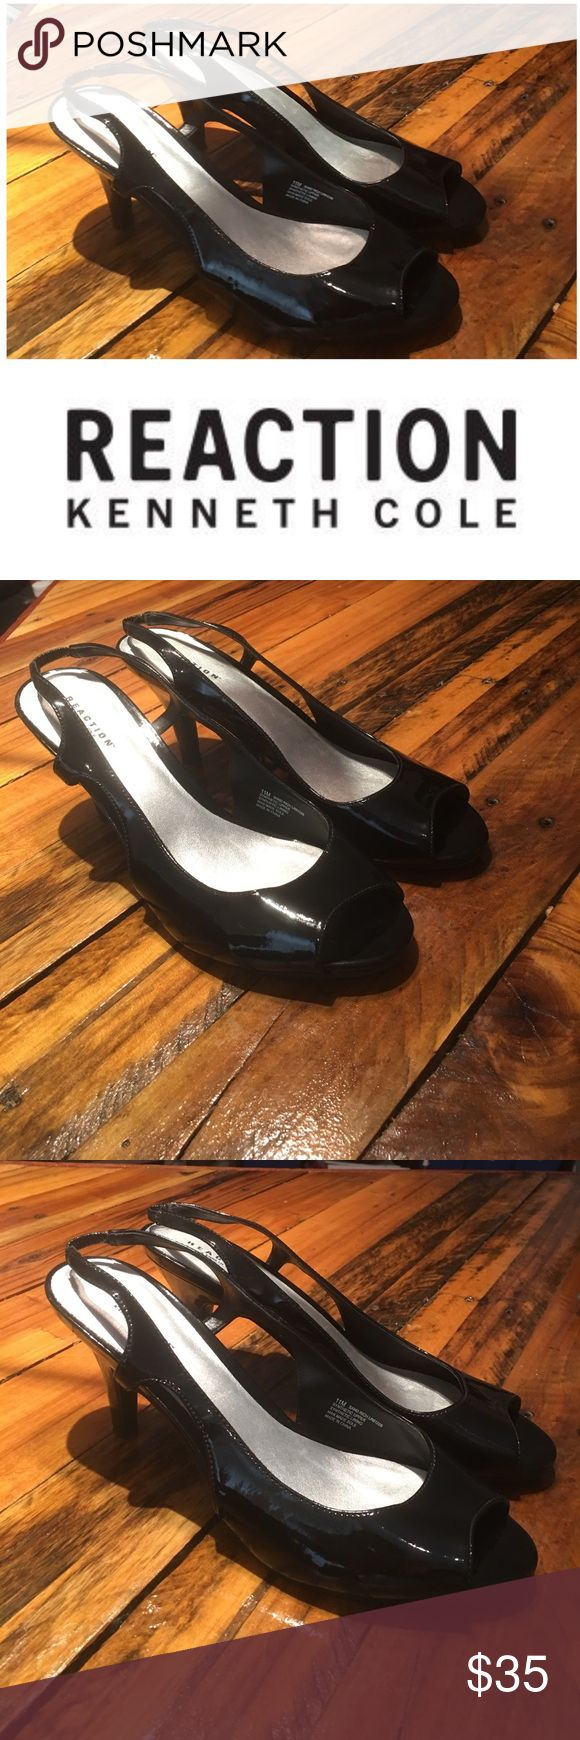 Designer Shoe Sale Excellent Condition Fashion Staple if you have any questions please don't hesitate to ask Kenneth Cole Reaction Shoes Heels